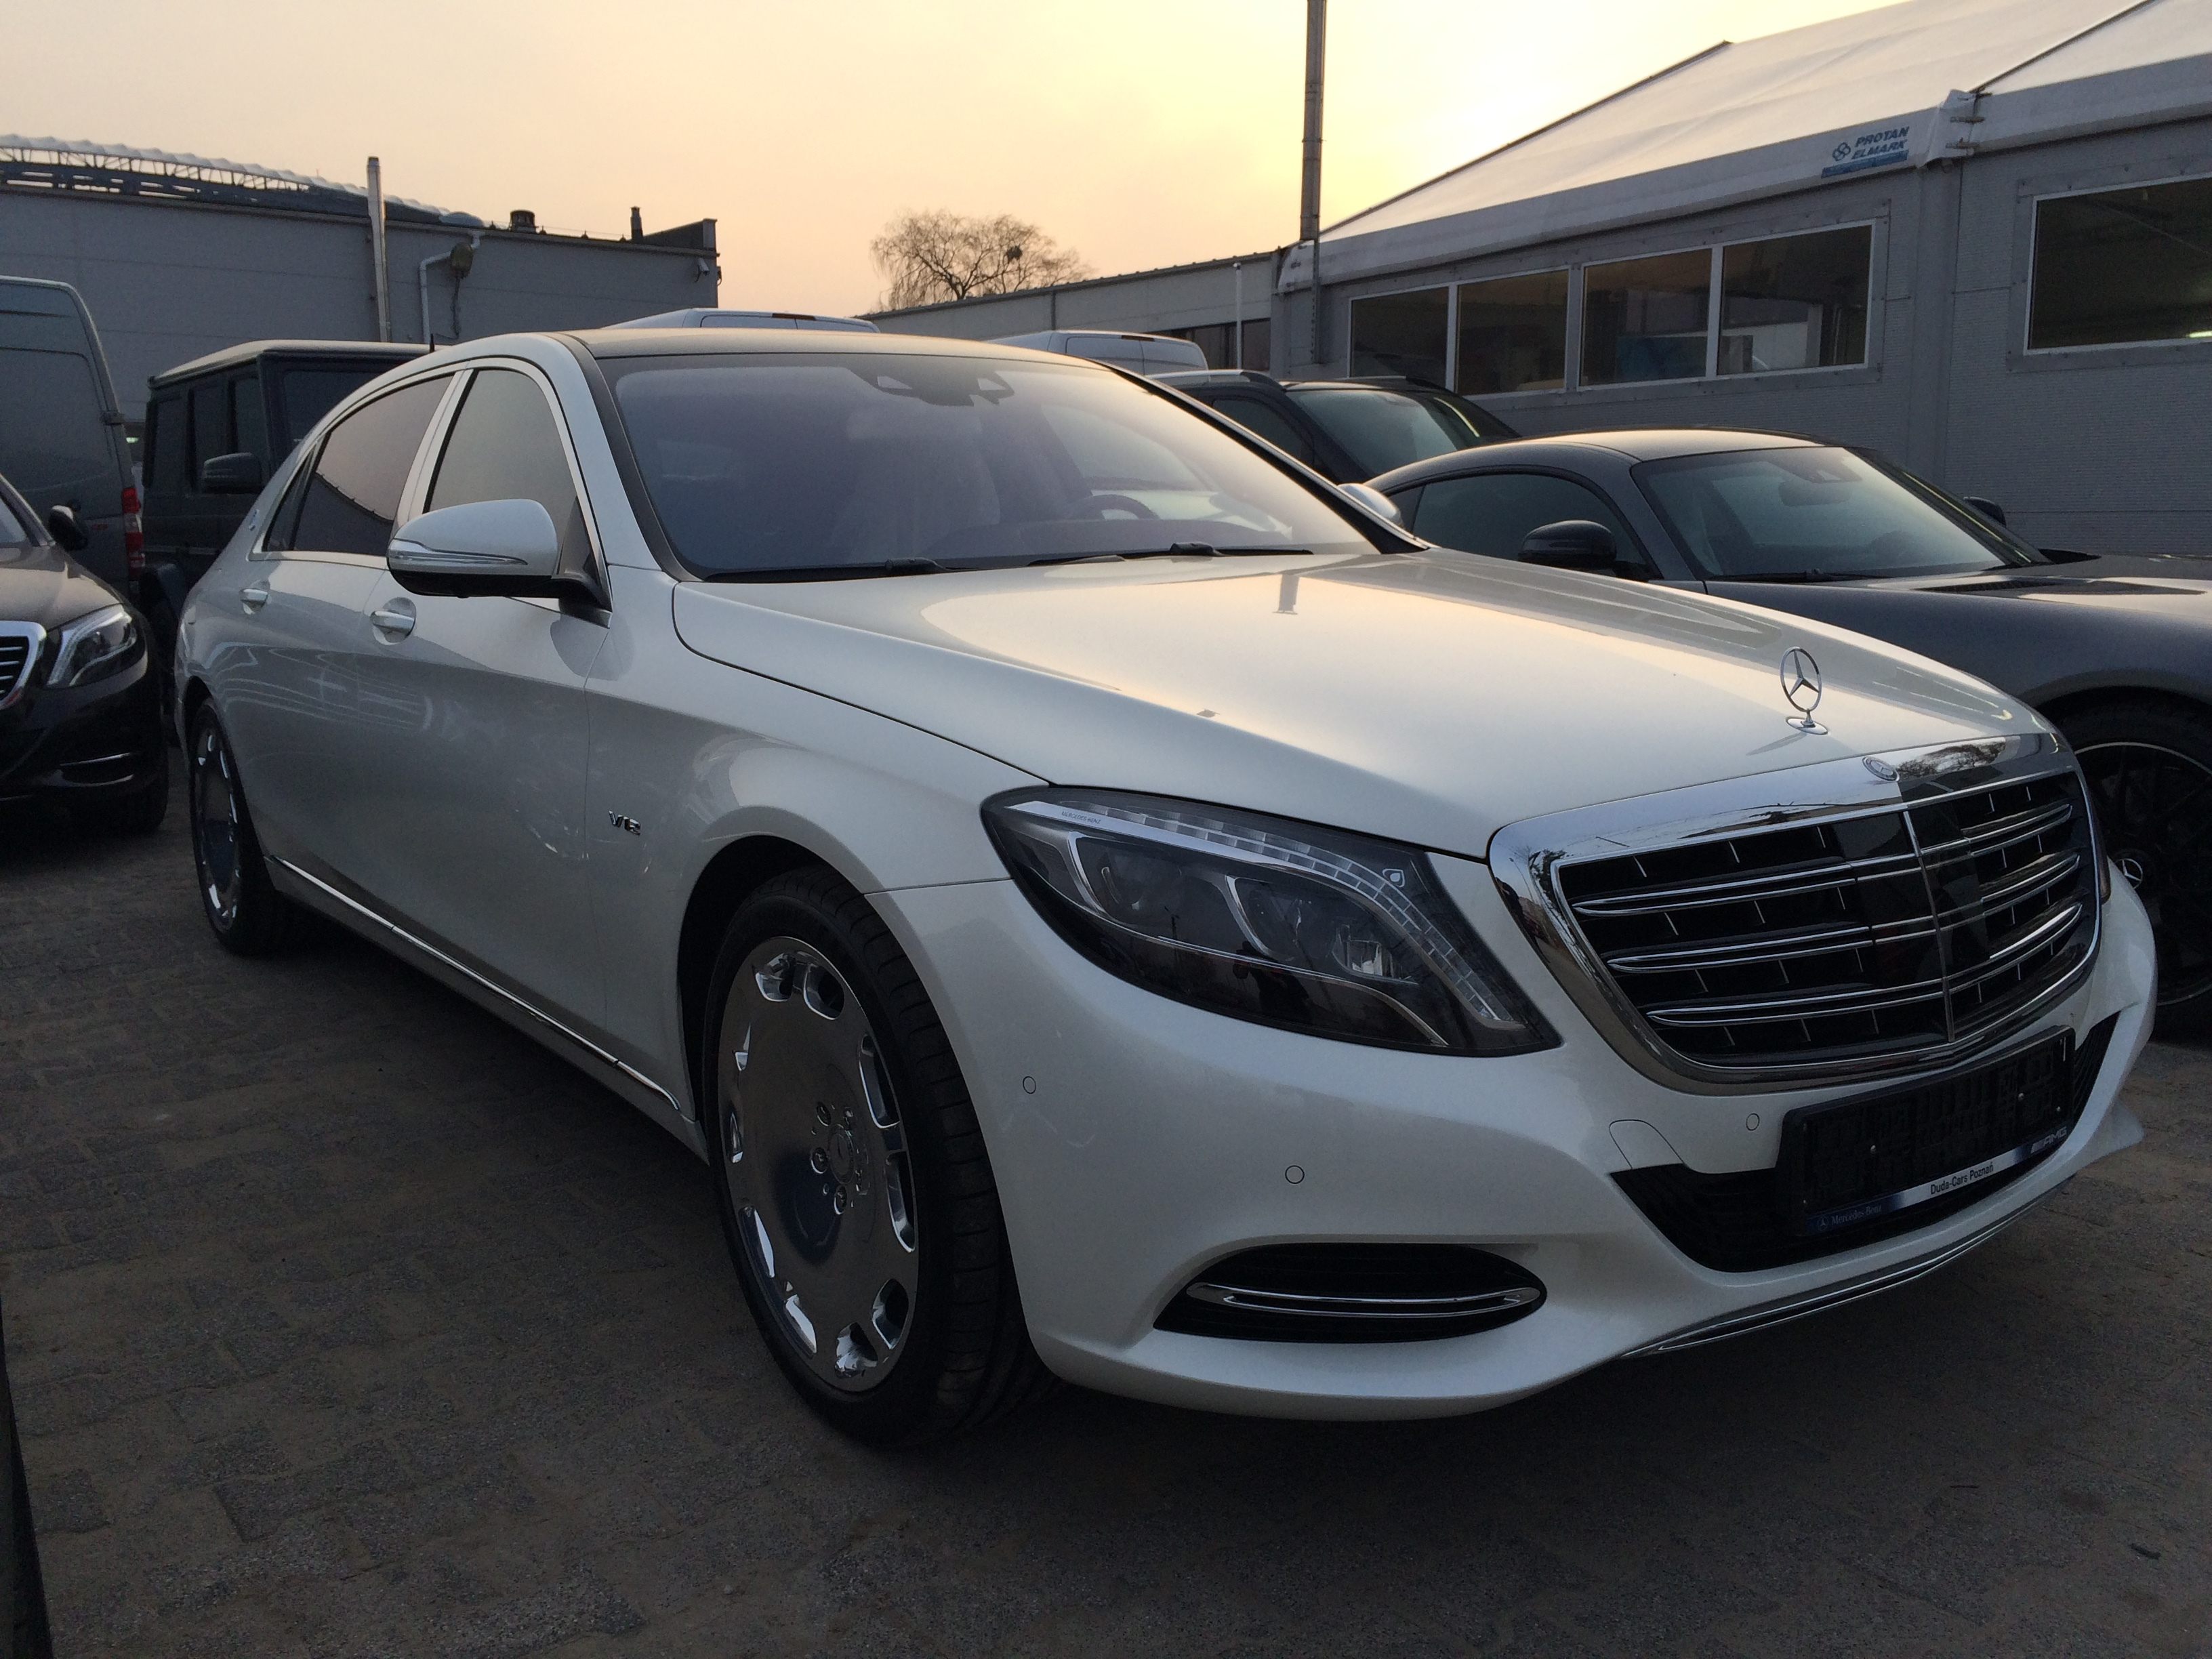 new 2015 mercedes s600 maybach product price buy aircrafts. Black Bedroom Furniture Sets. Home Design Ideas